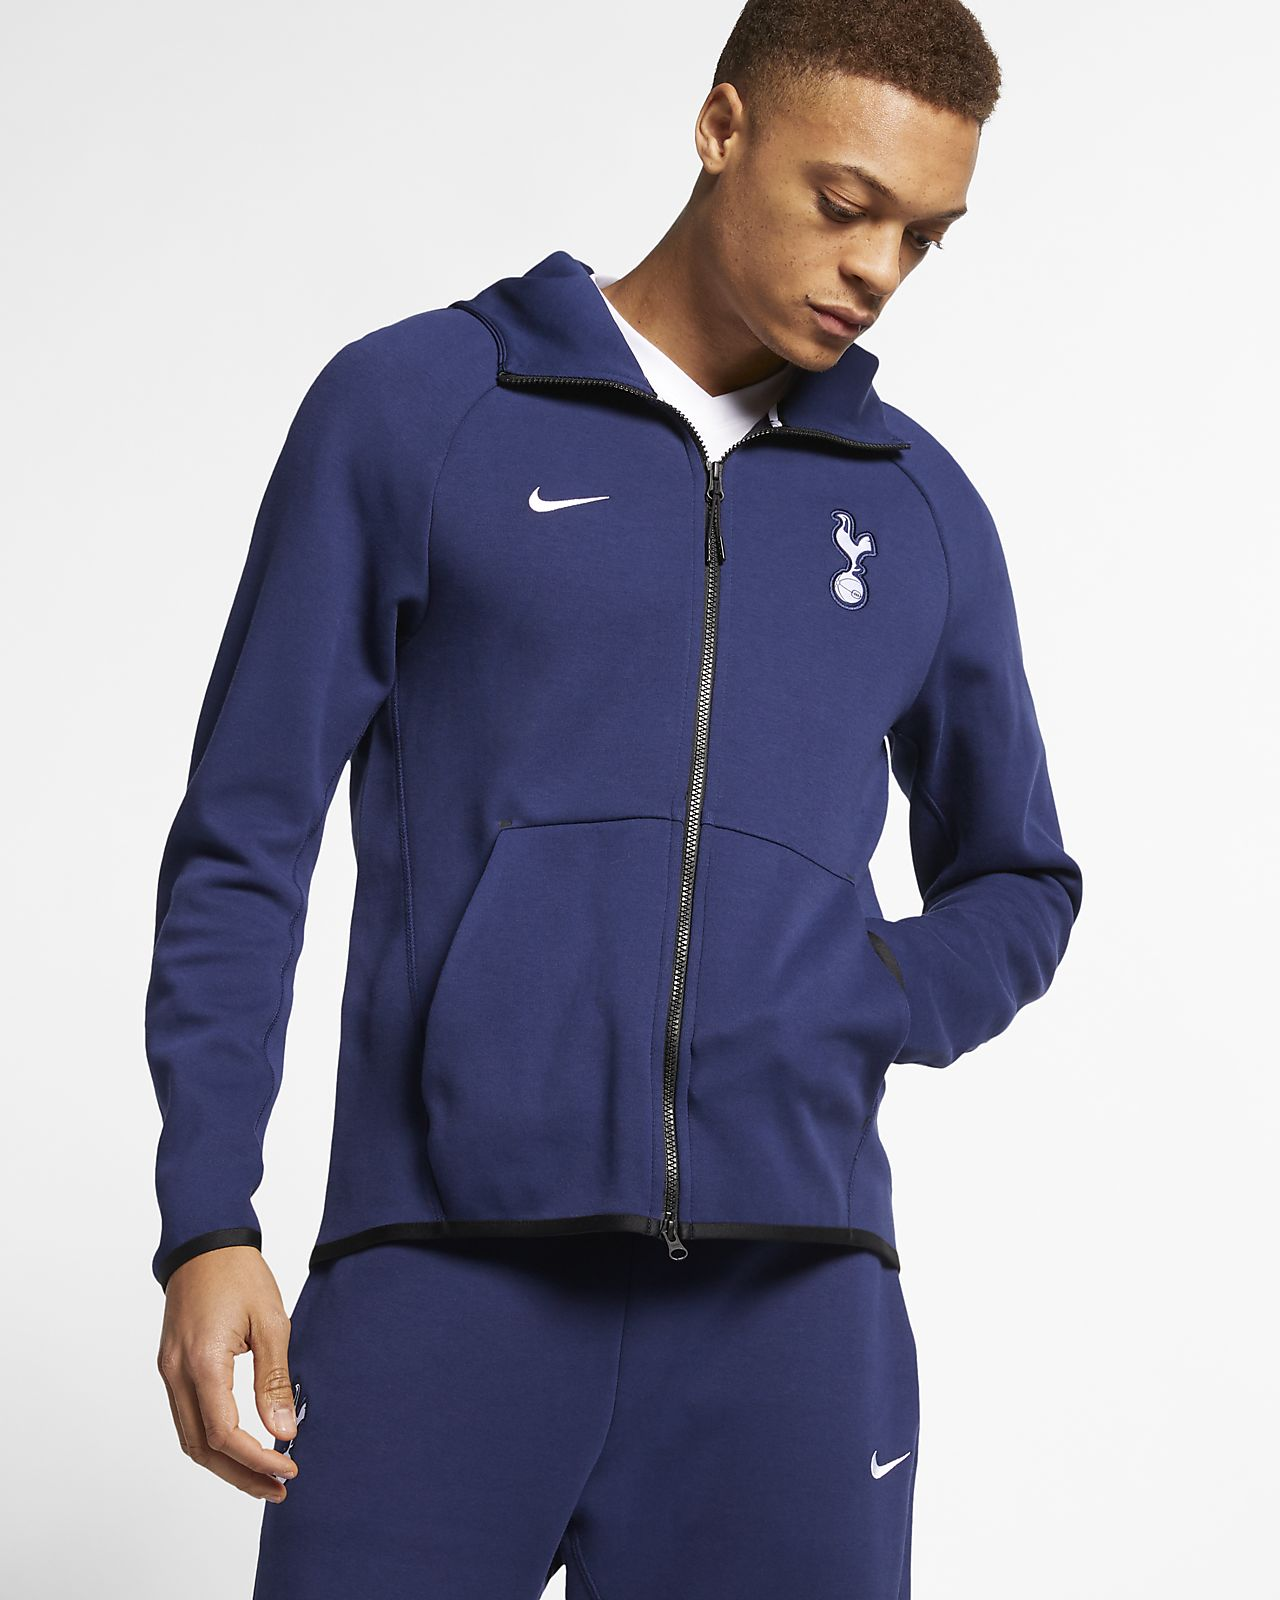 6acb37ac07fd Tottenham Hotspur Tech Fleece Men s Full-Zip Hoodie. Nike.com CA